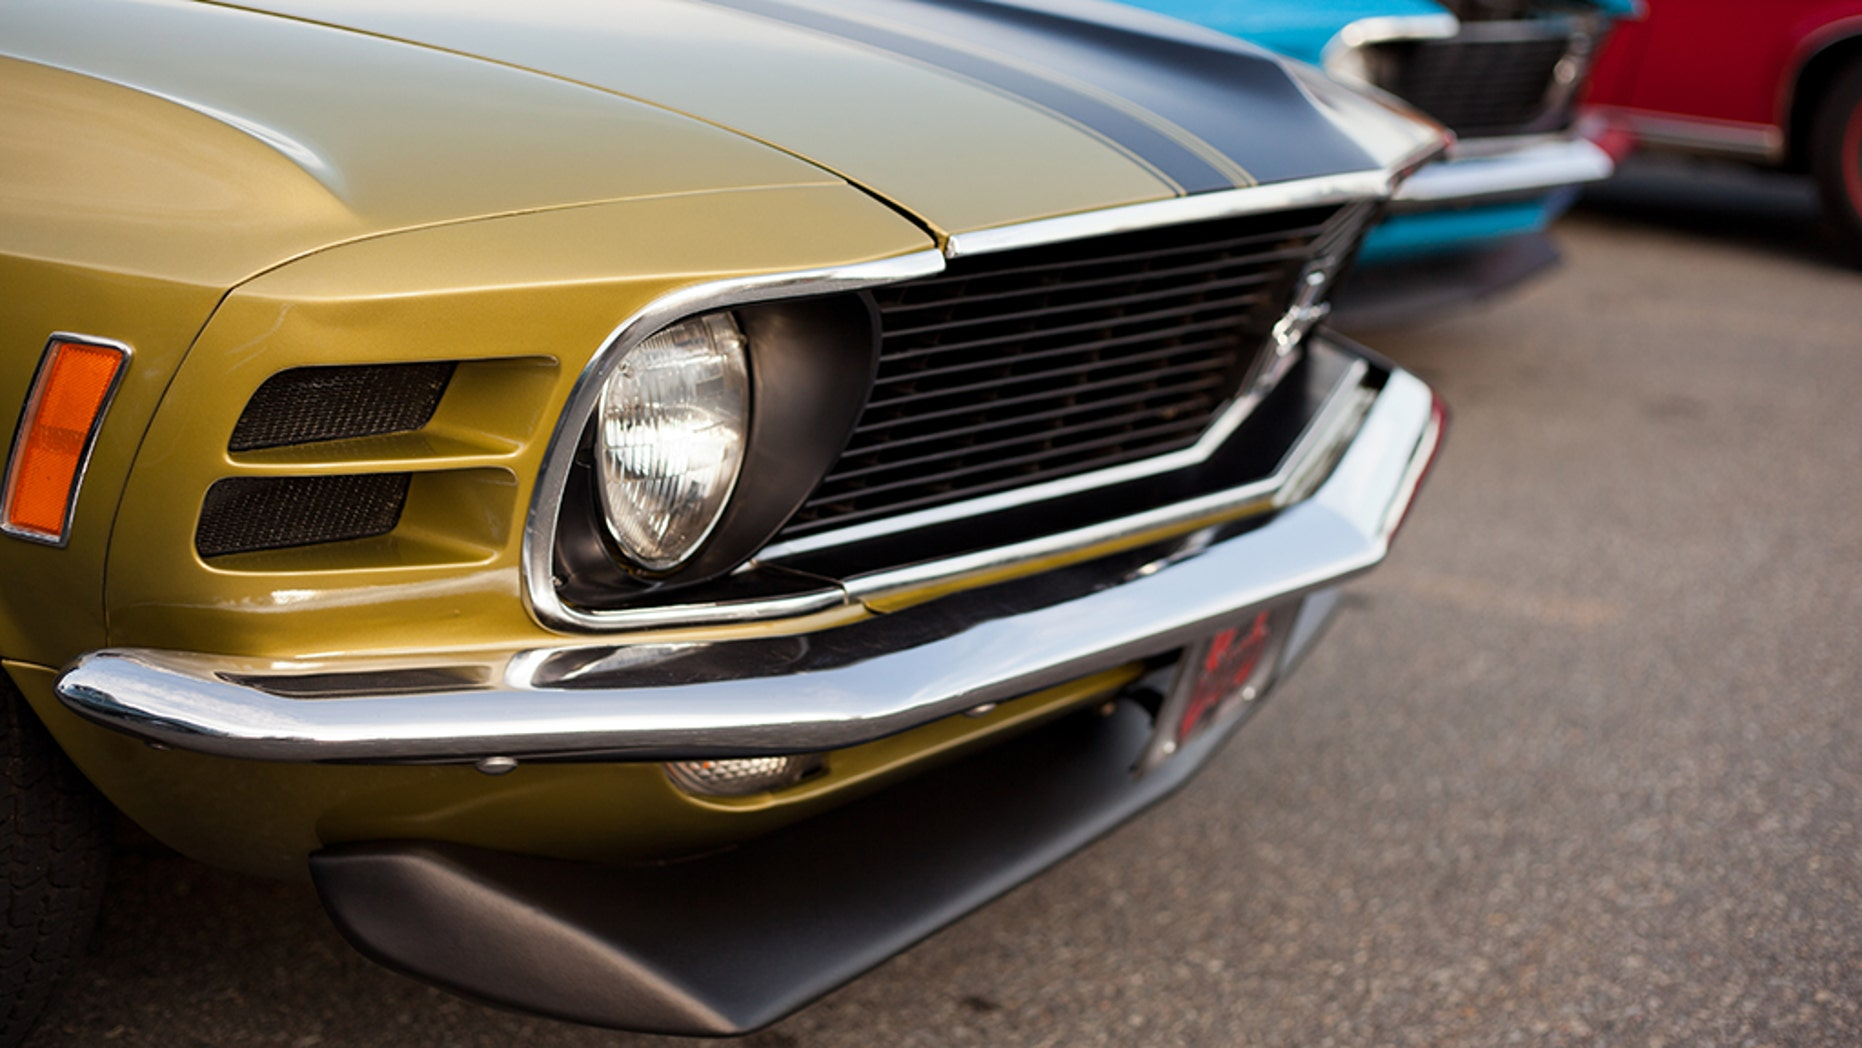 """""""Dartmouth, Nova Scotia Canada - July 19, 2012: A front end shot of a 1970 Ford Mustang antique car in Dartmouth, Nova Scotia, Canada. This classic car was parked by the owner in a parking lot at a local weekly gathering with other classic cars and car enthusiasts."""""""